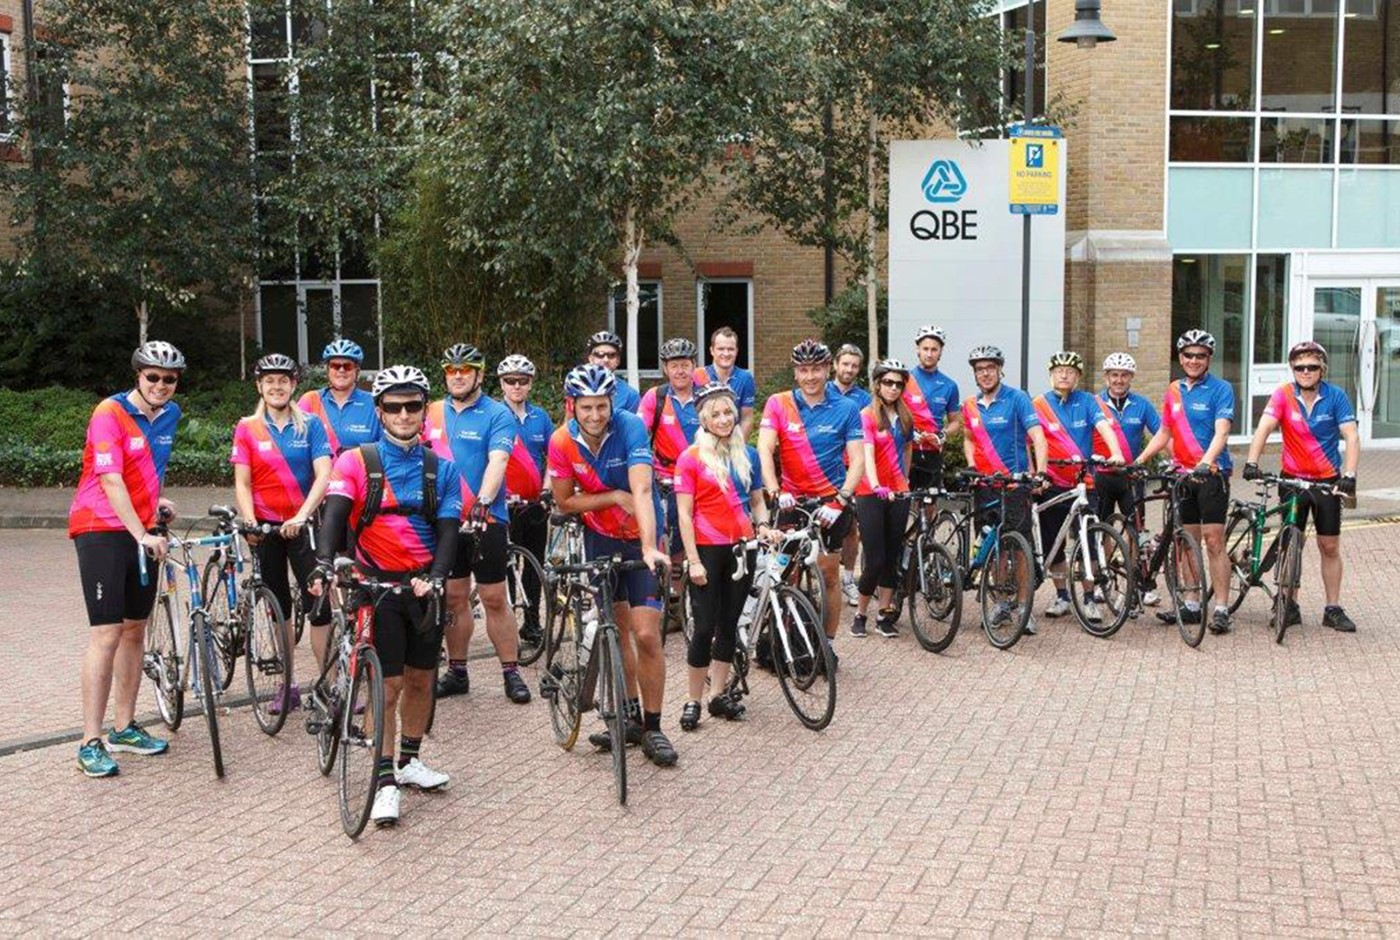 Tour de QBE launches from Glasgow in bid to raise £50,000 for breast cancer charity